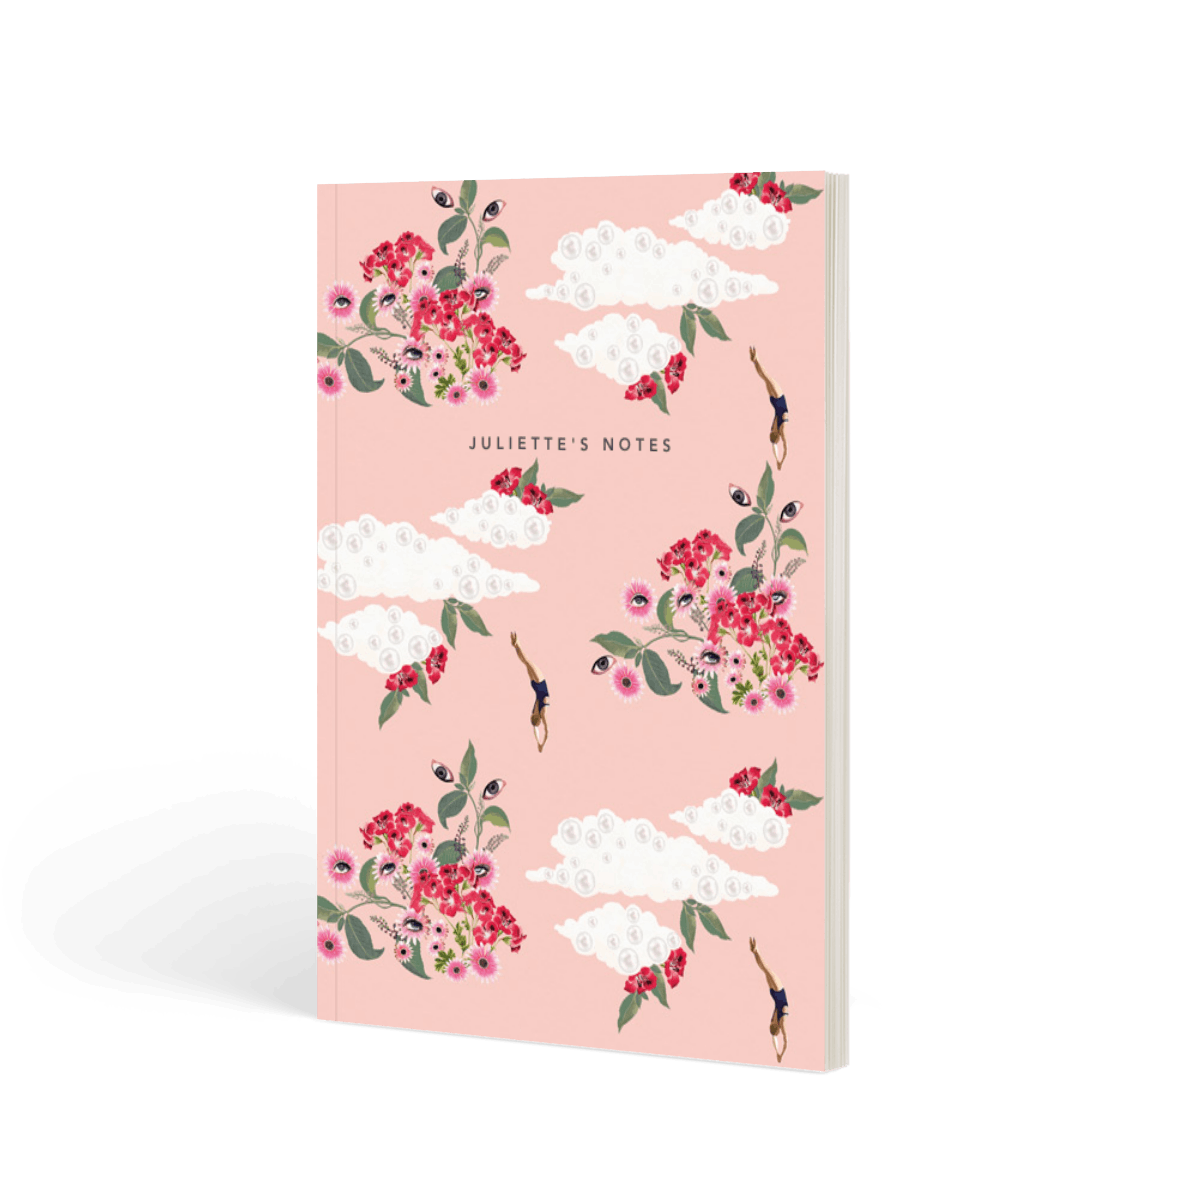 Https%3a%2f%2fwww.papier.com%2fproduct image%2f24313%2f6%2fpink dreamer 6085 front 1570268947.png?ixlib=rb 1.1